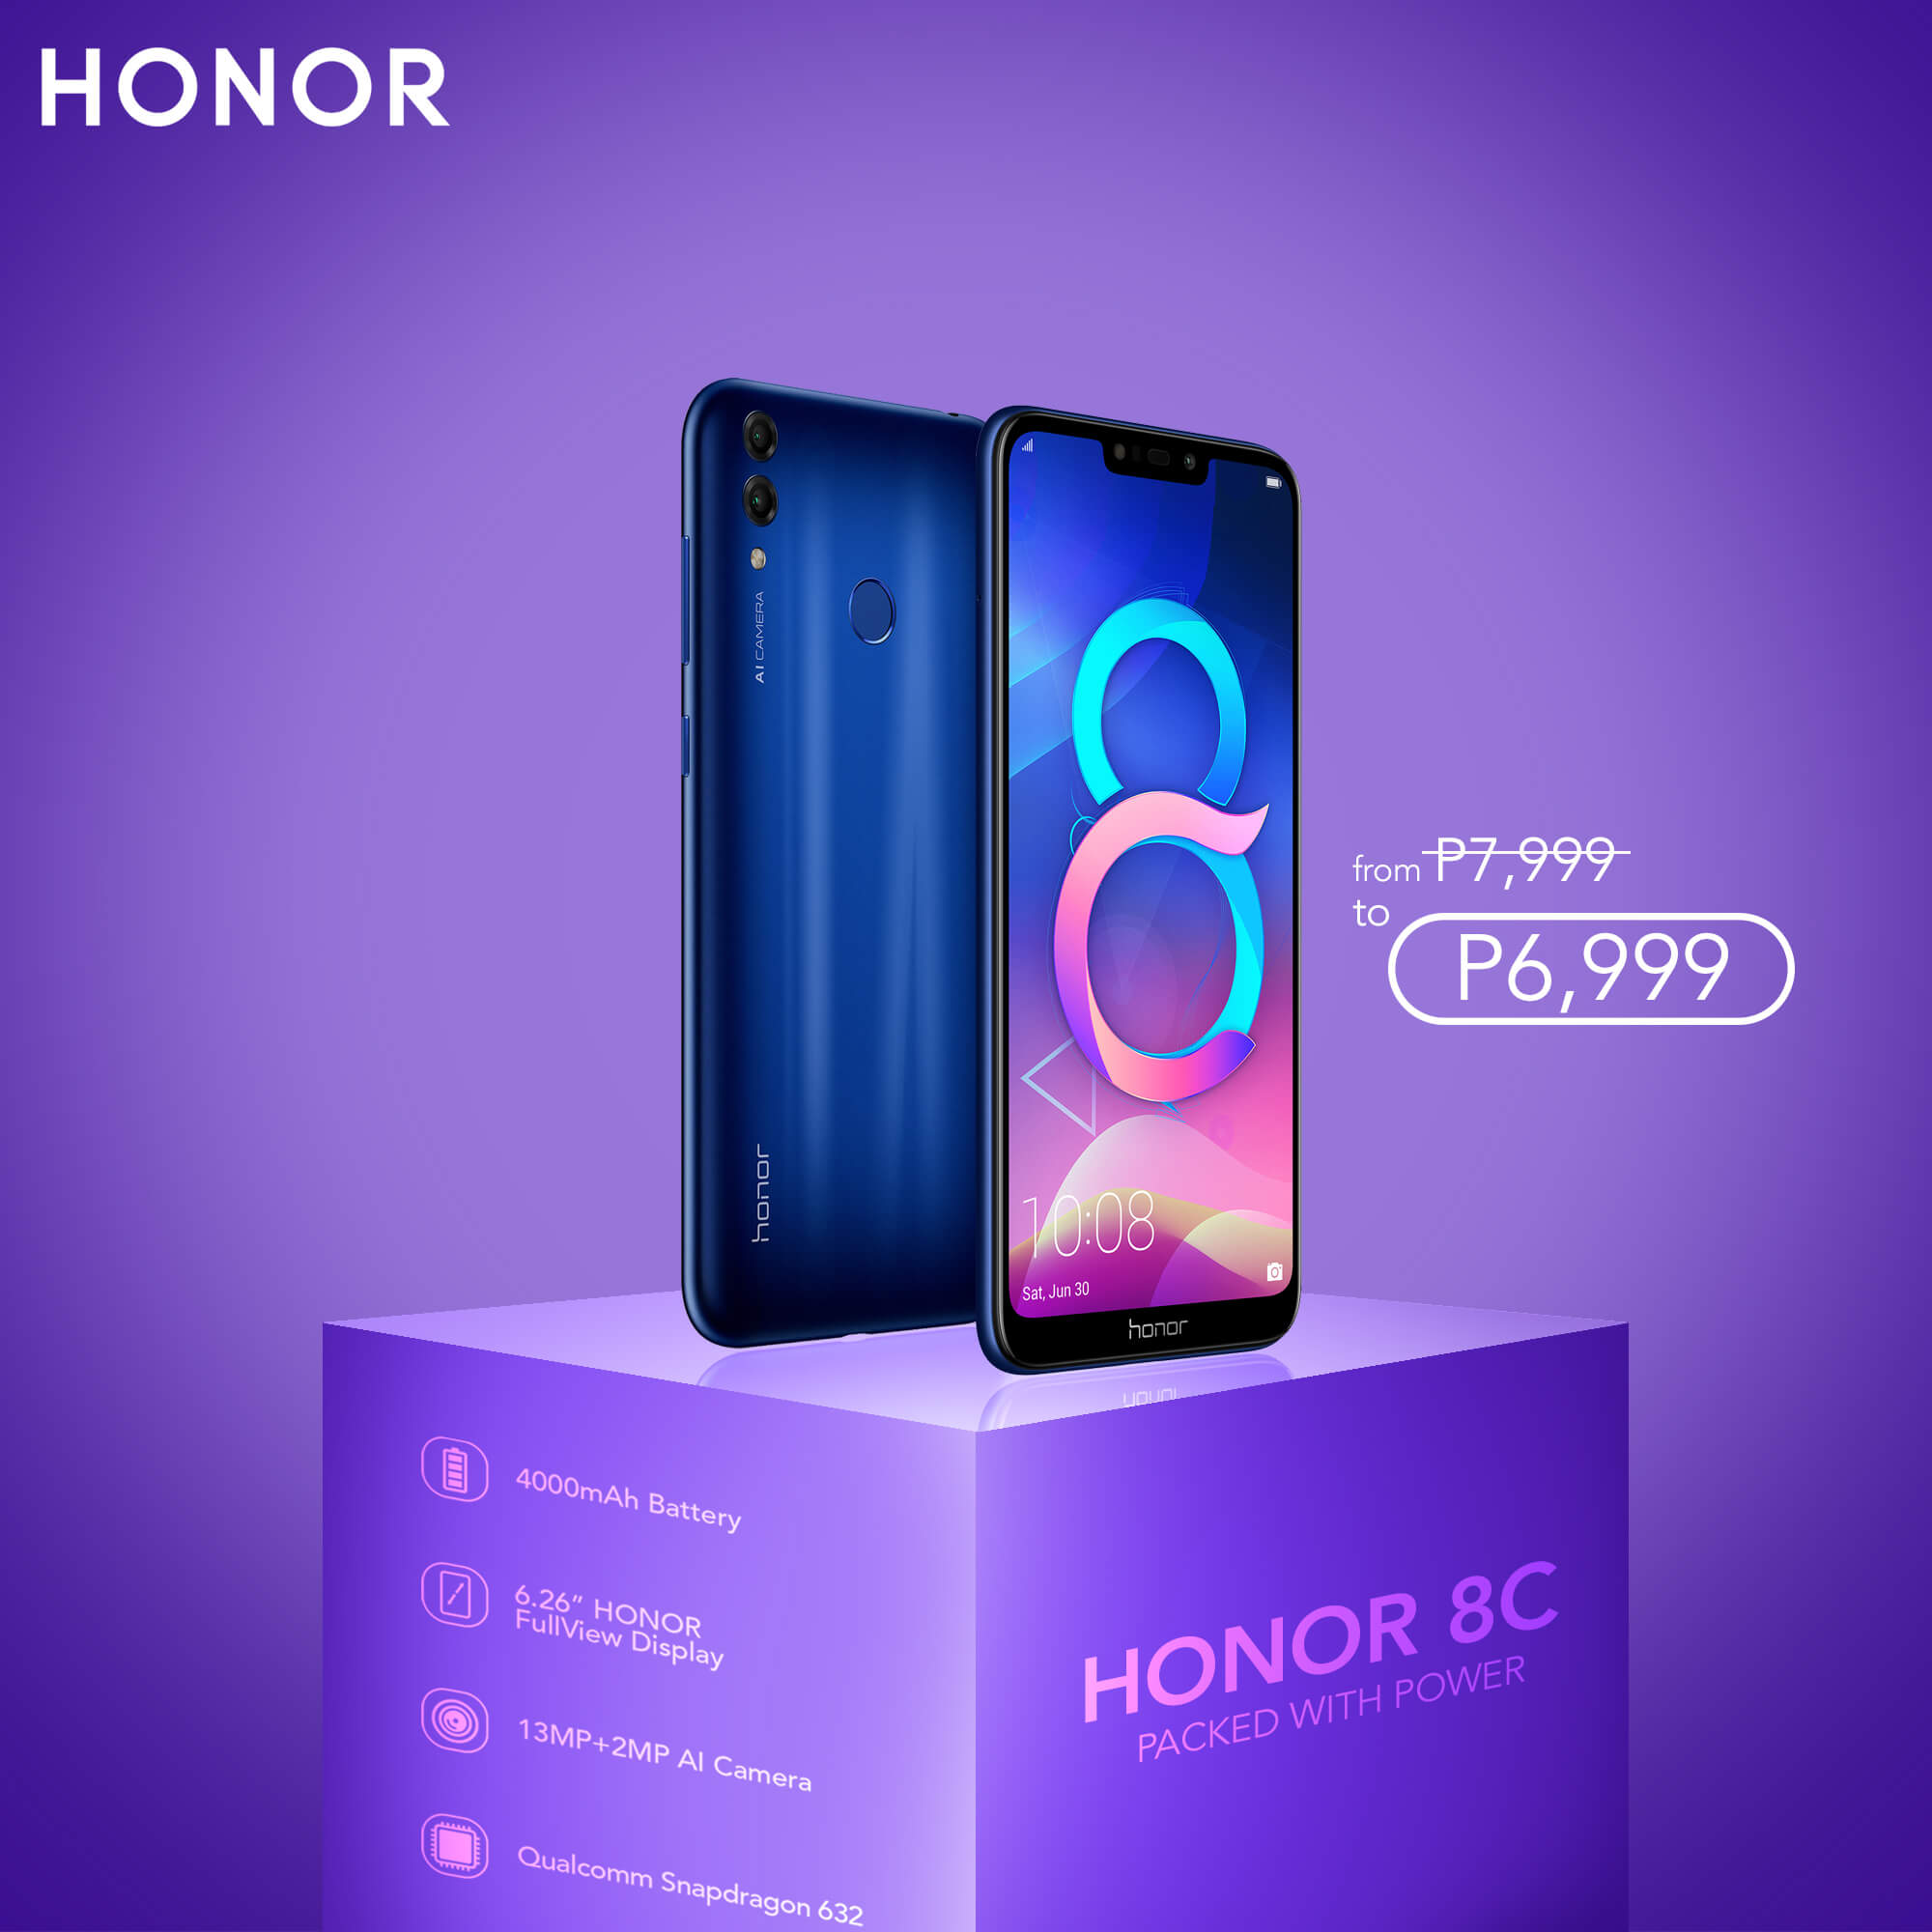 HONOR 8C, HONOR 8C Gets a Price Drop, Now at PhP6,999!, Gadget Pilipinas, Gadget Pilipinas